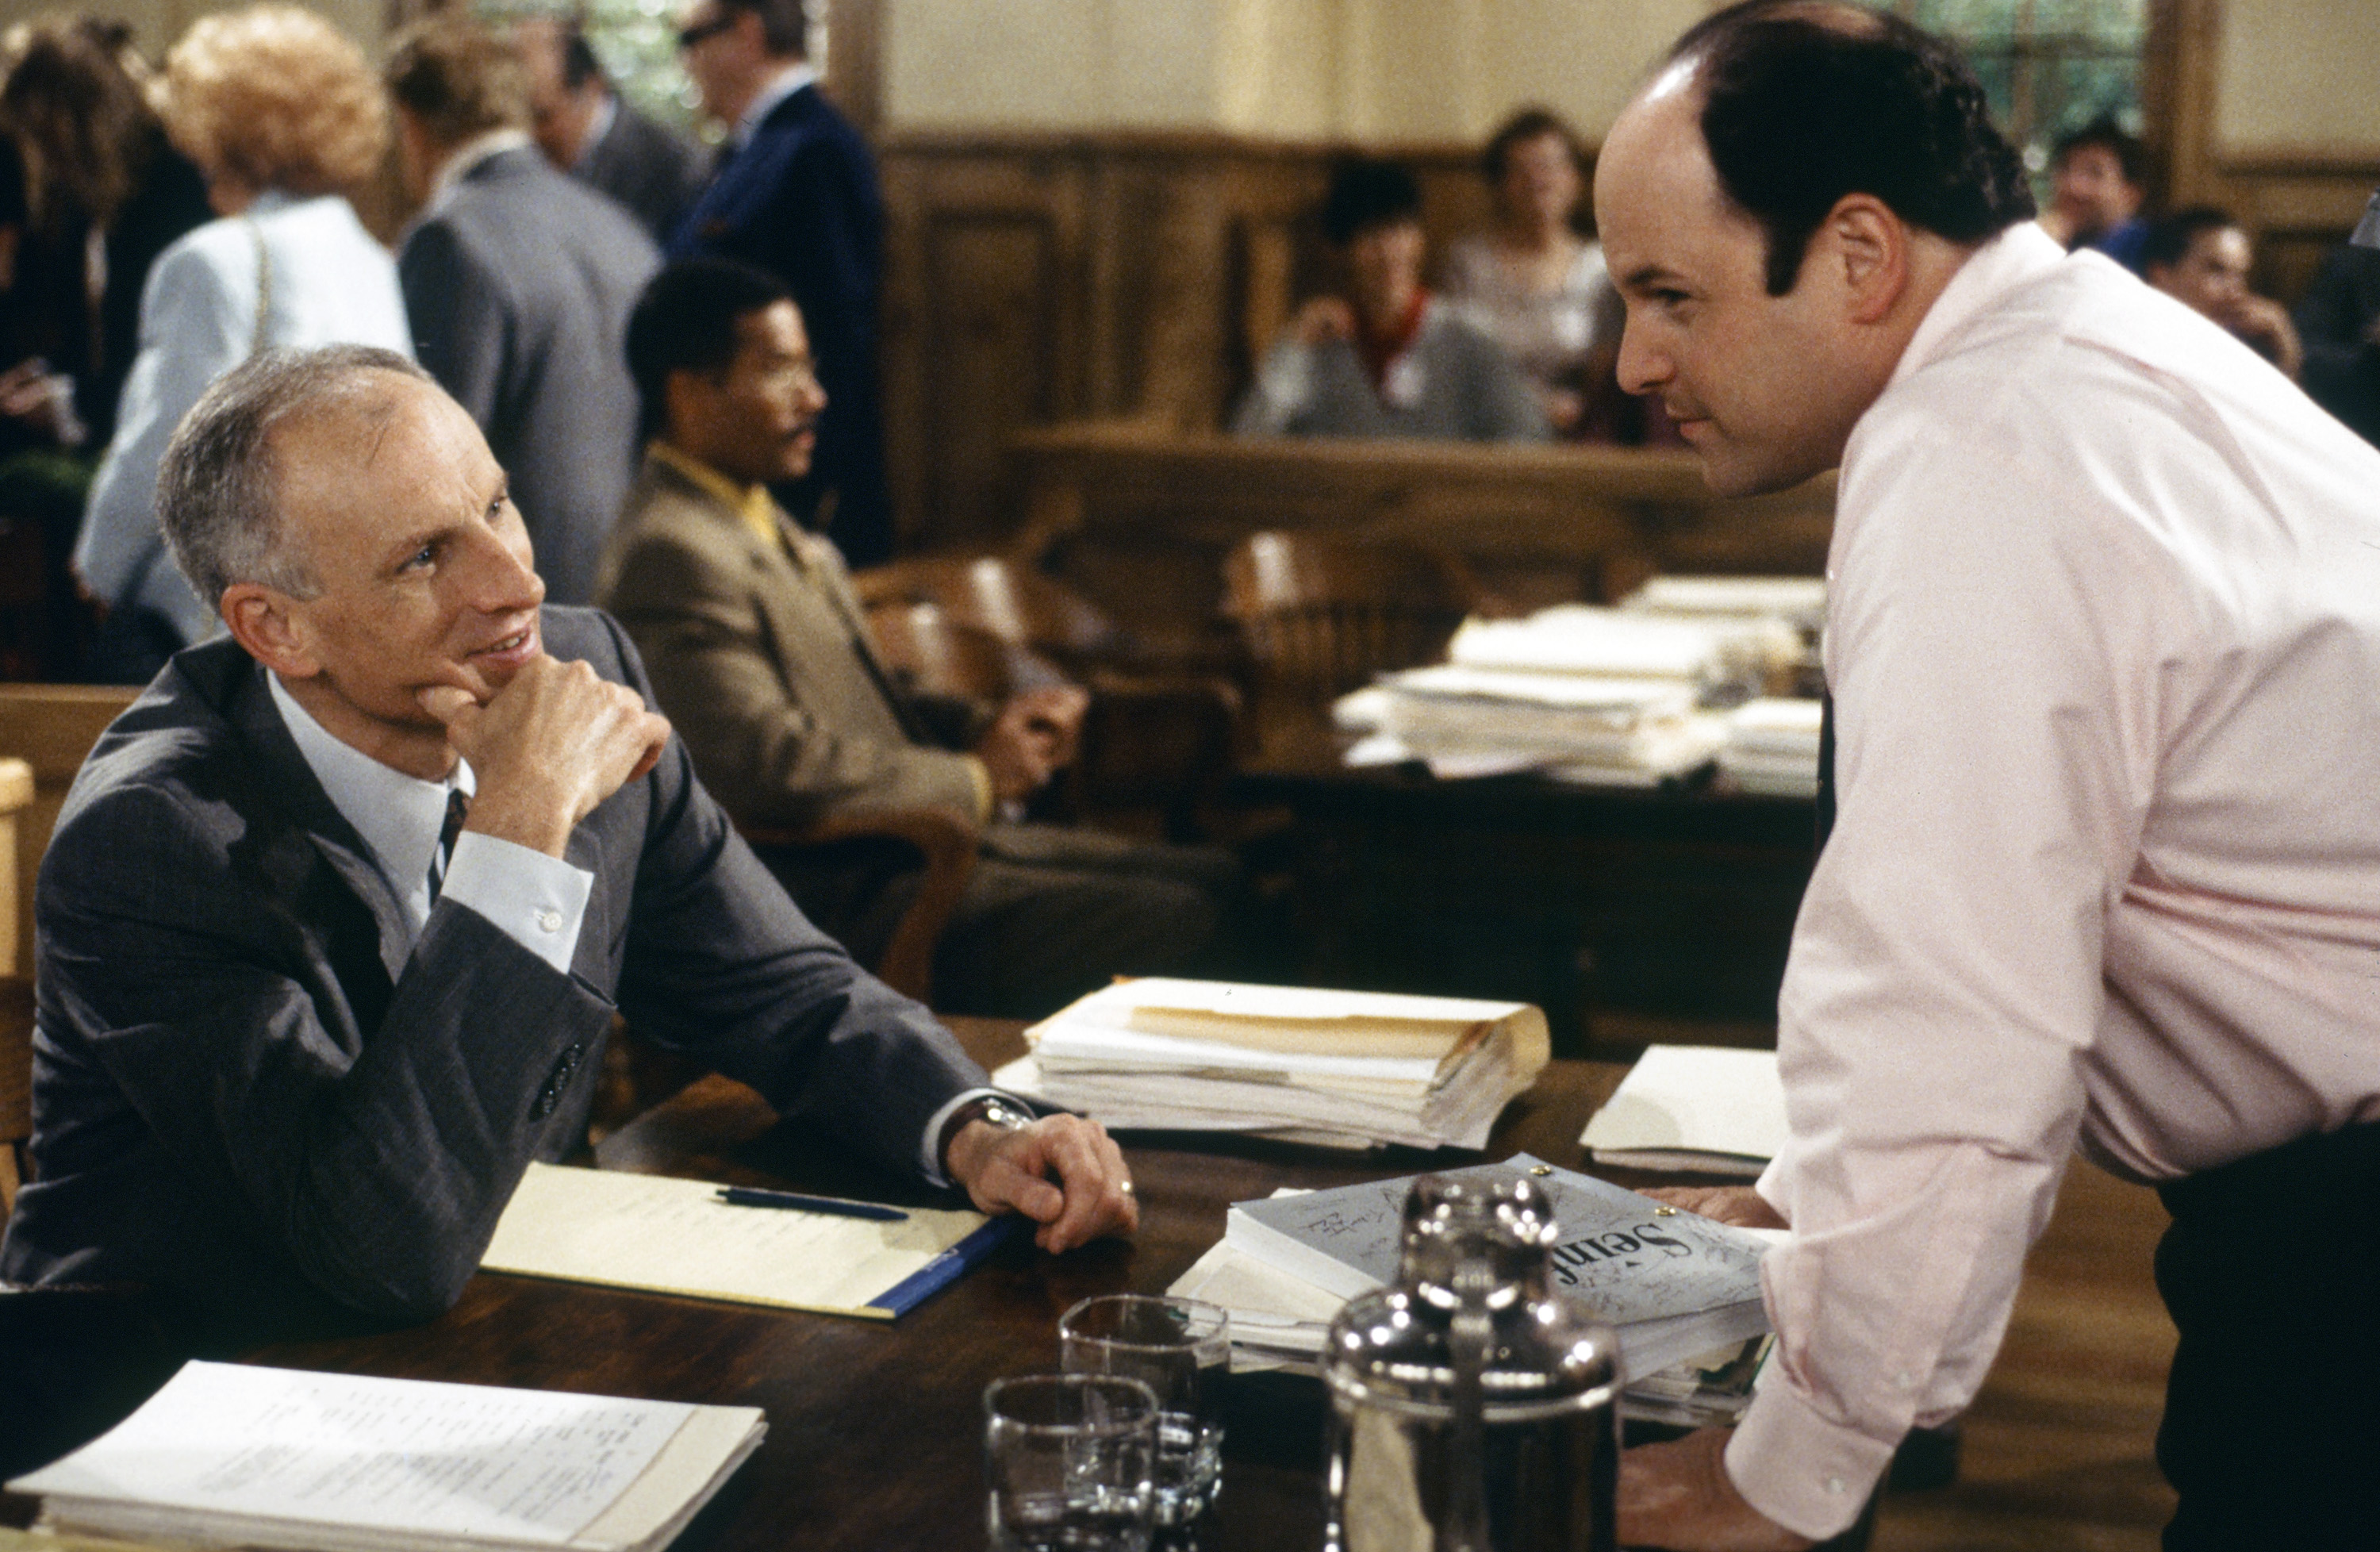 He became part of TV history when he played the lawyer that put Jerry, George, Eliane and Kramer behind bars in the finale of Seinfeld in 1998.